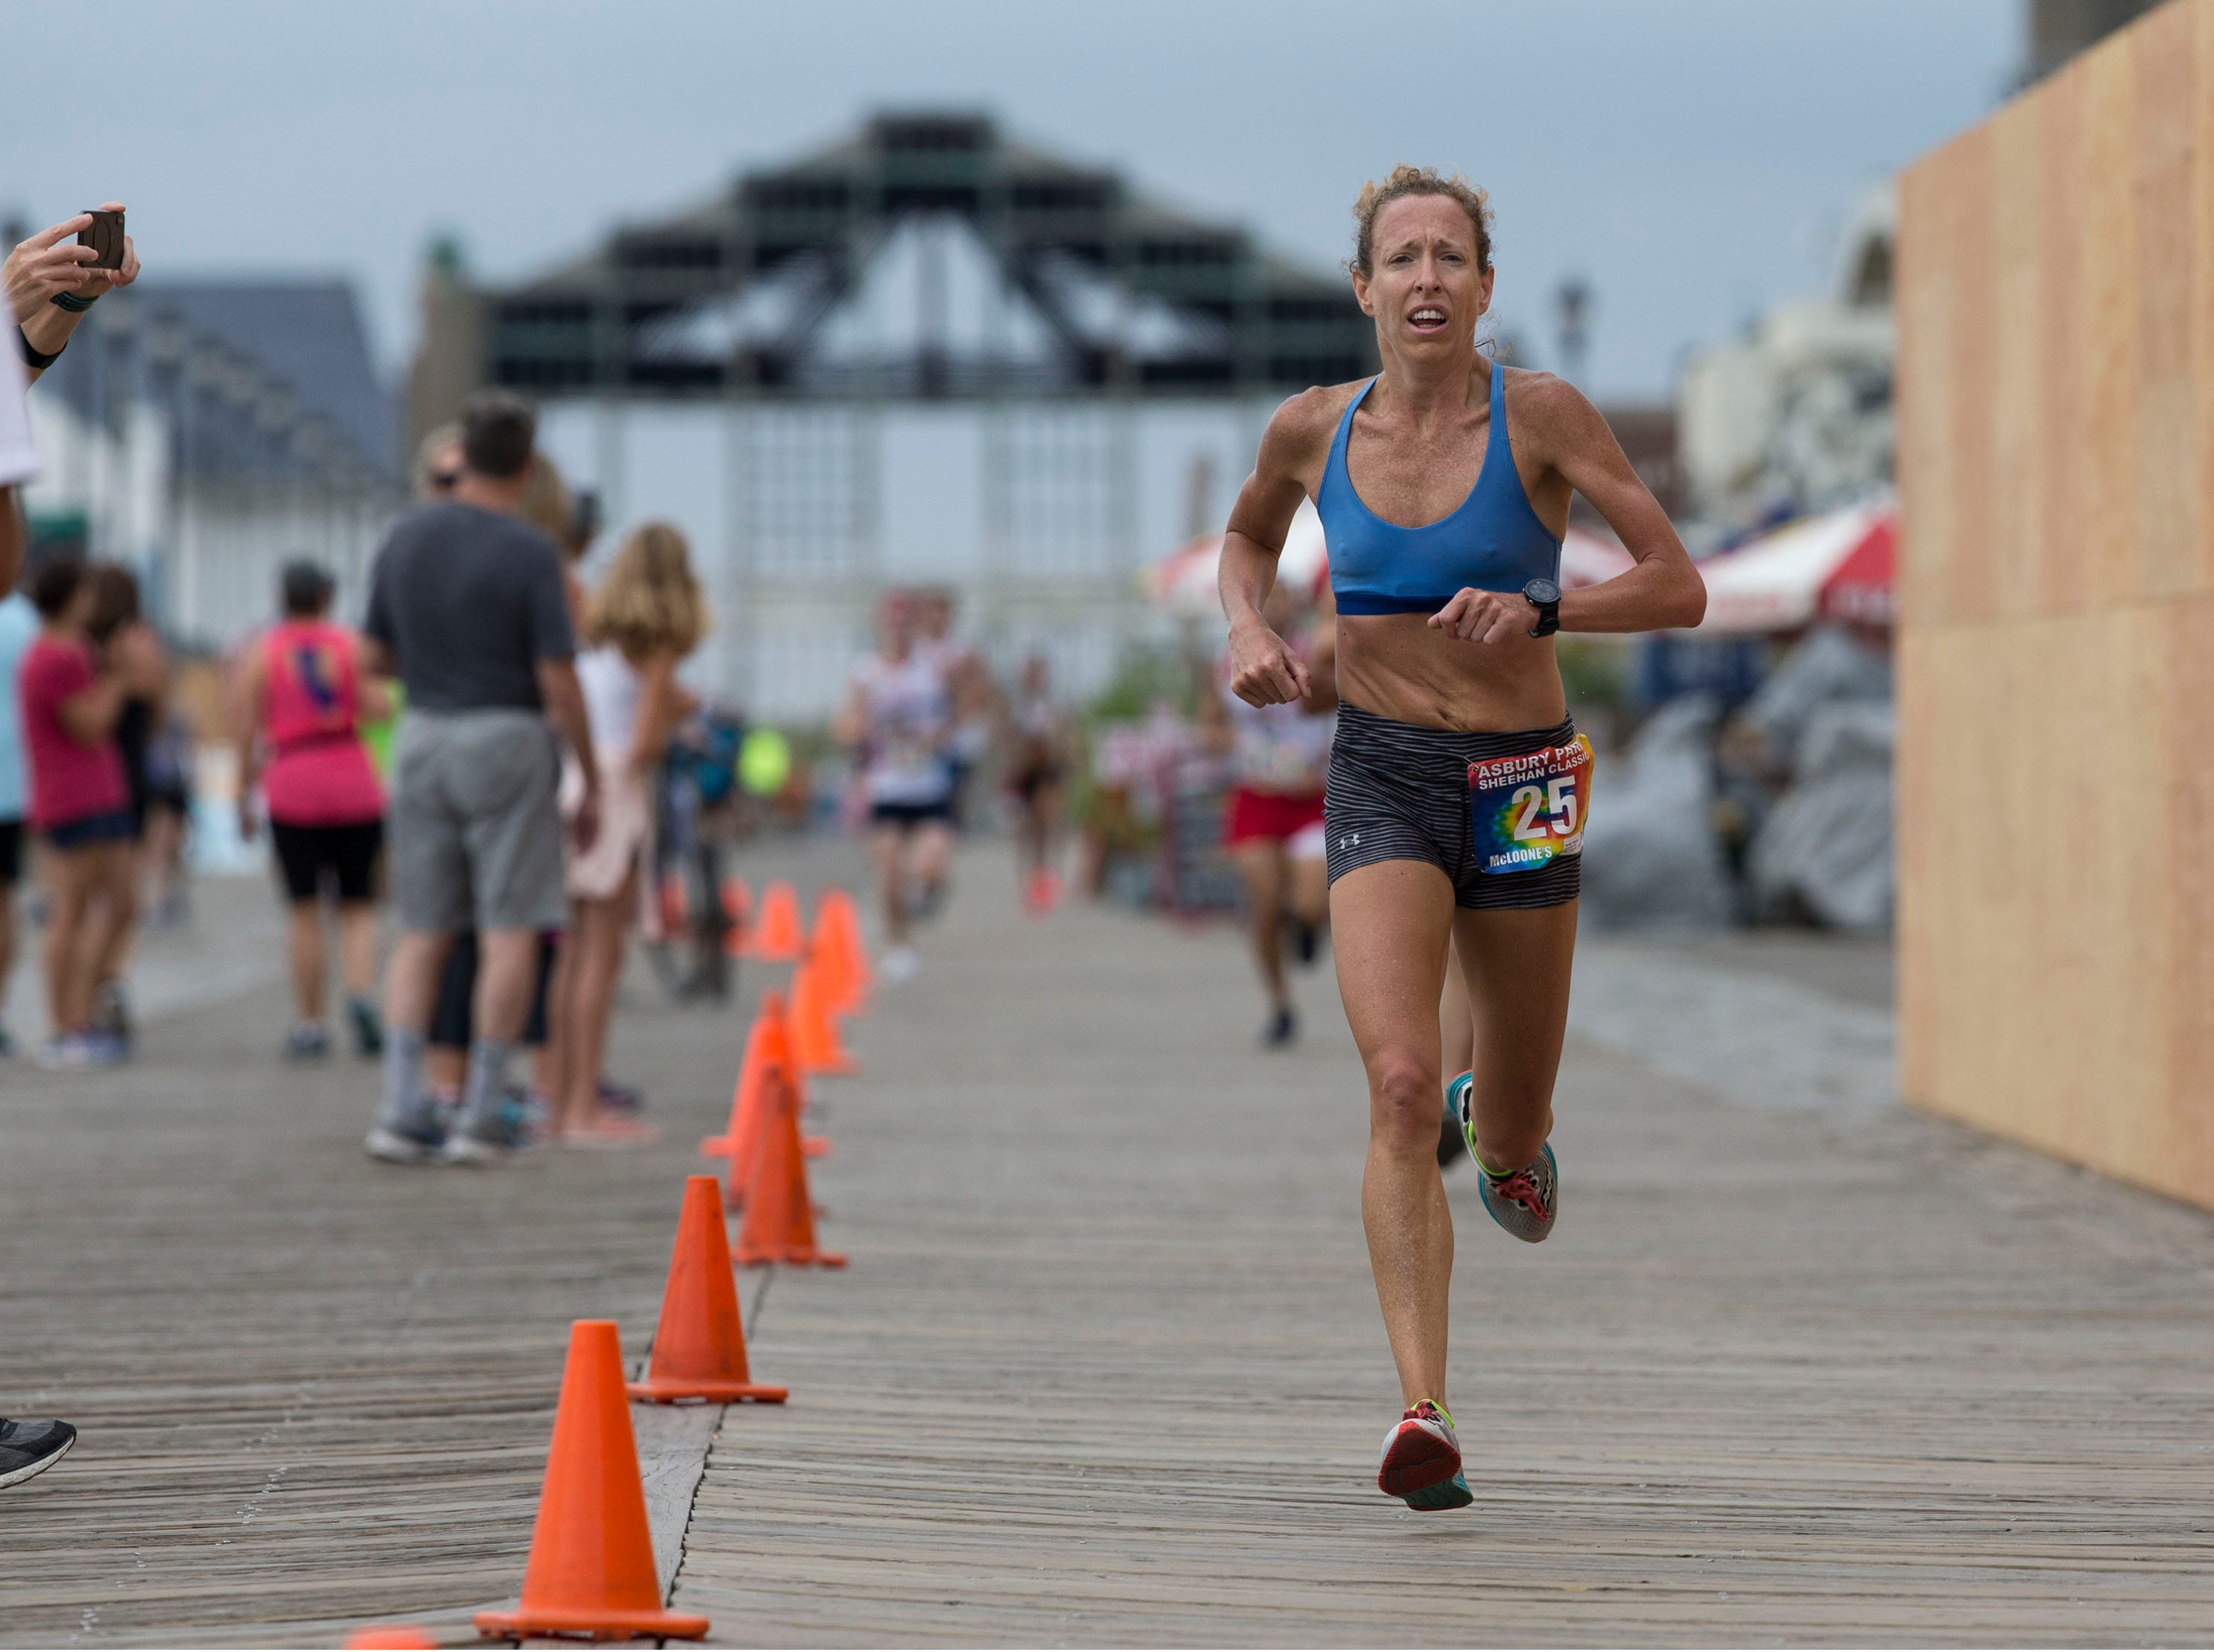 The Asbury Park 5K race makes its way along city streets and finishes after a stretch on the boardwalk. First place female is Roberta Groner of Ledgewood. 